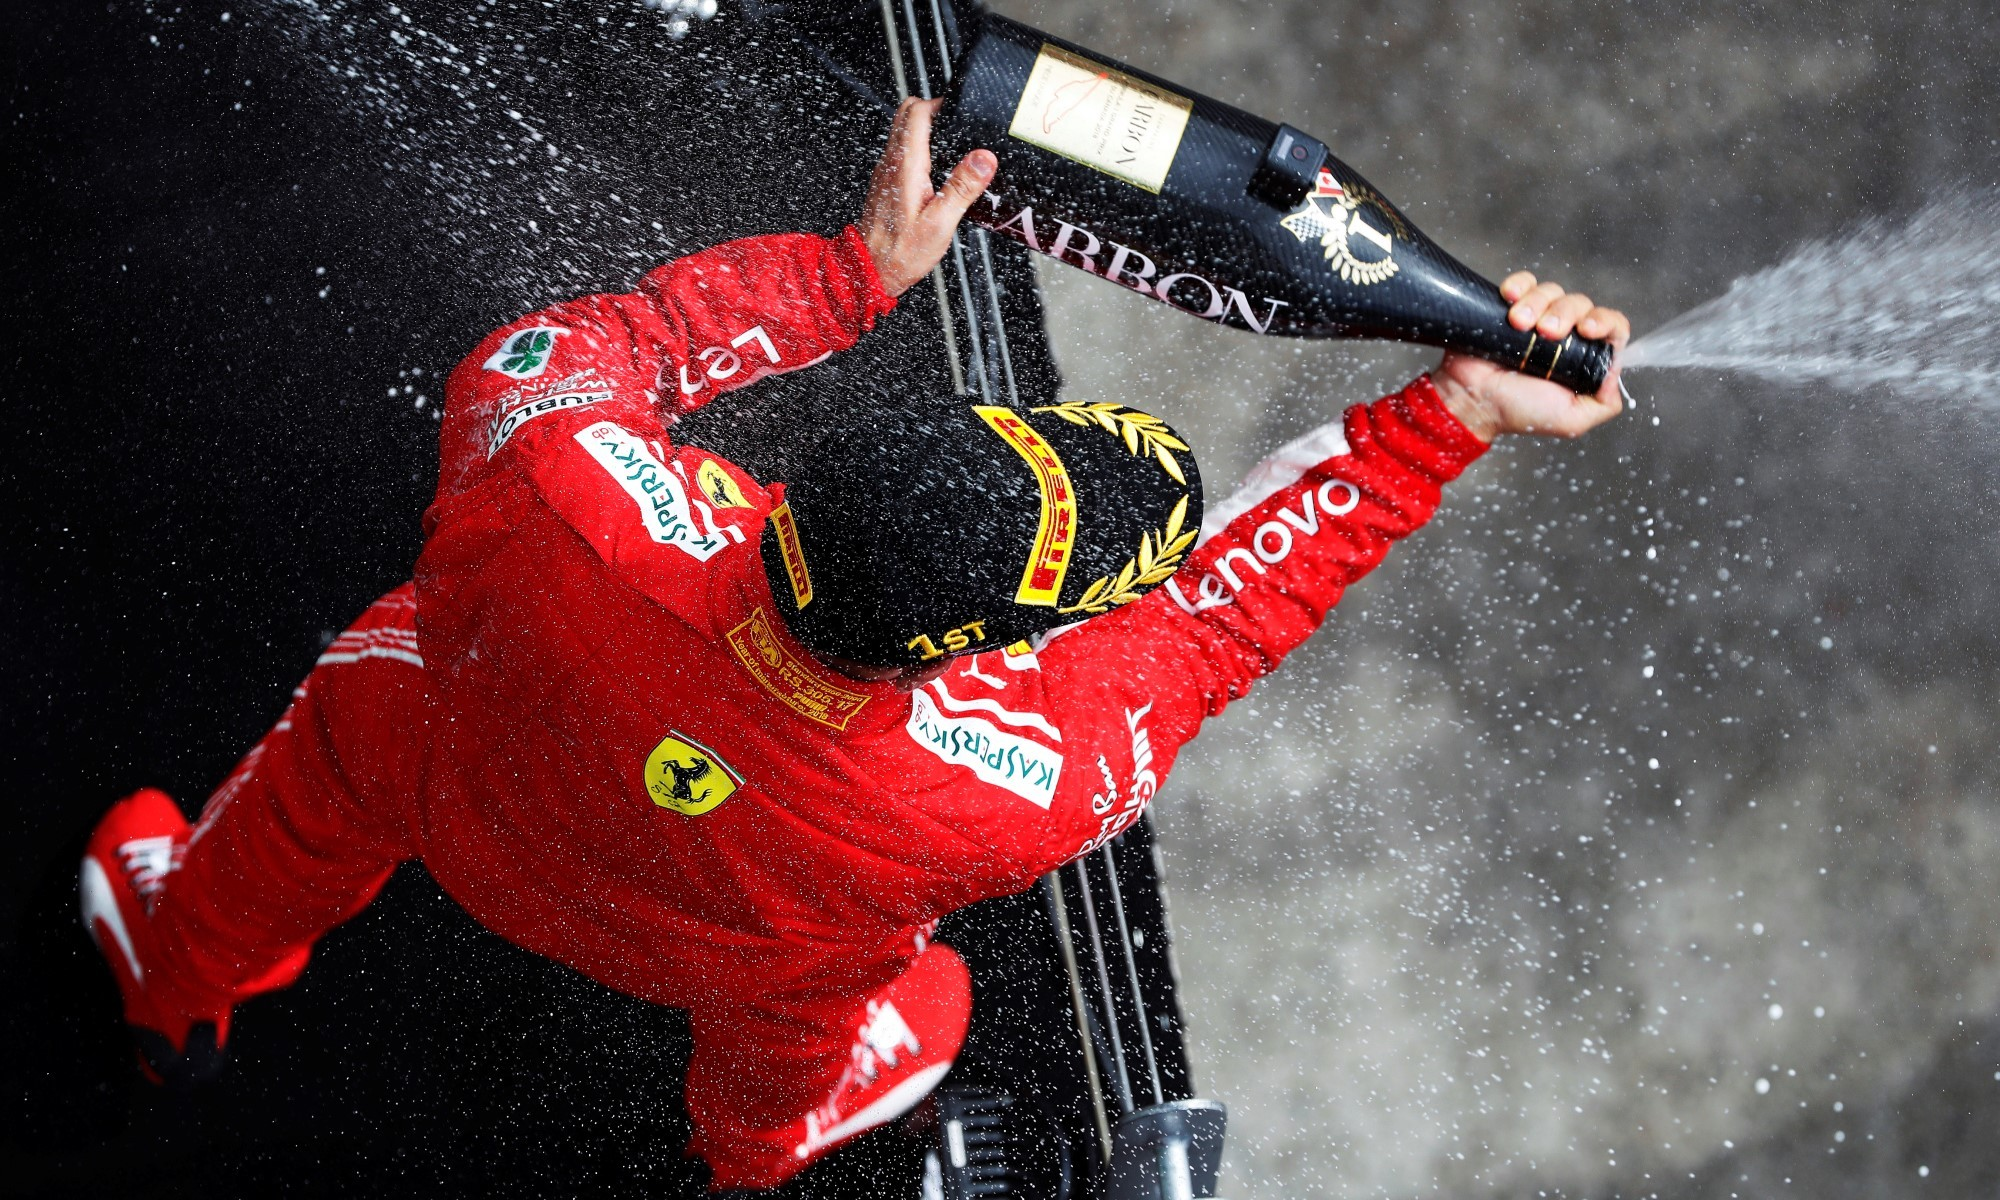 Vettel got to enjoy the spoils in Canadia